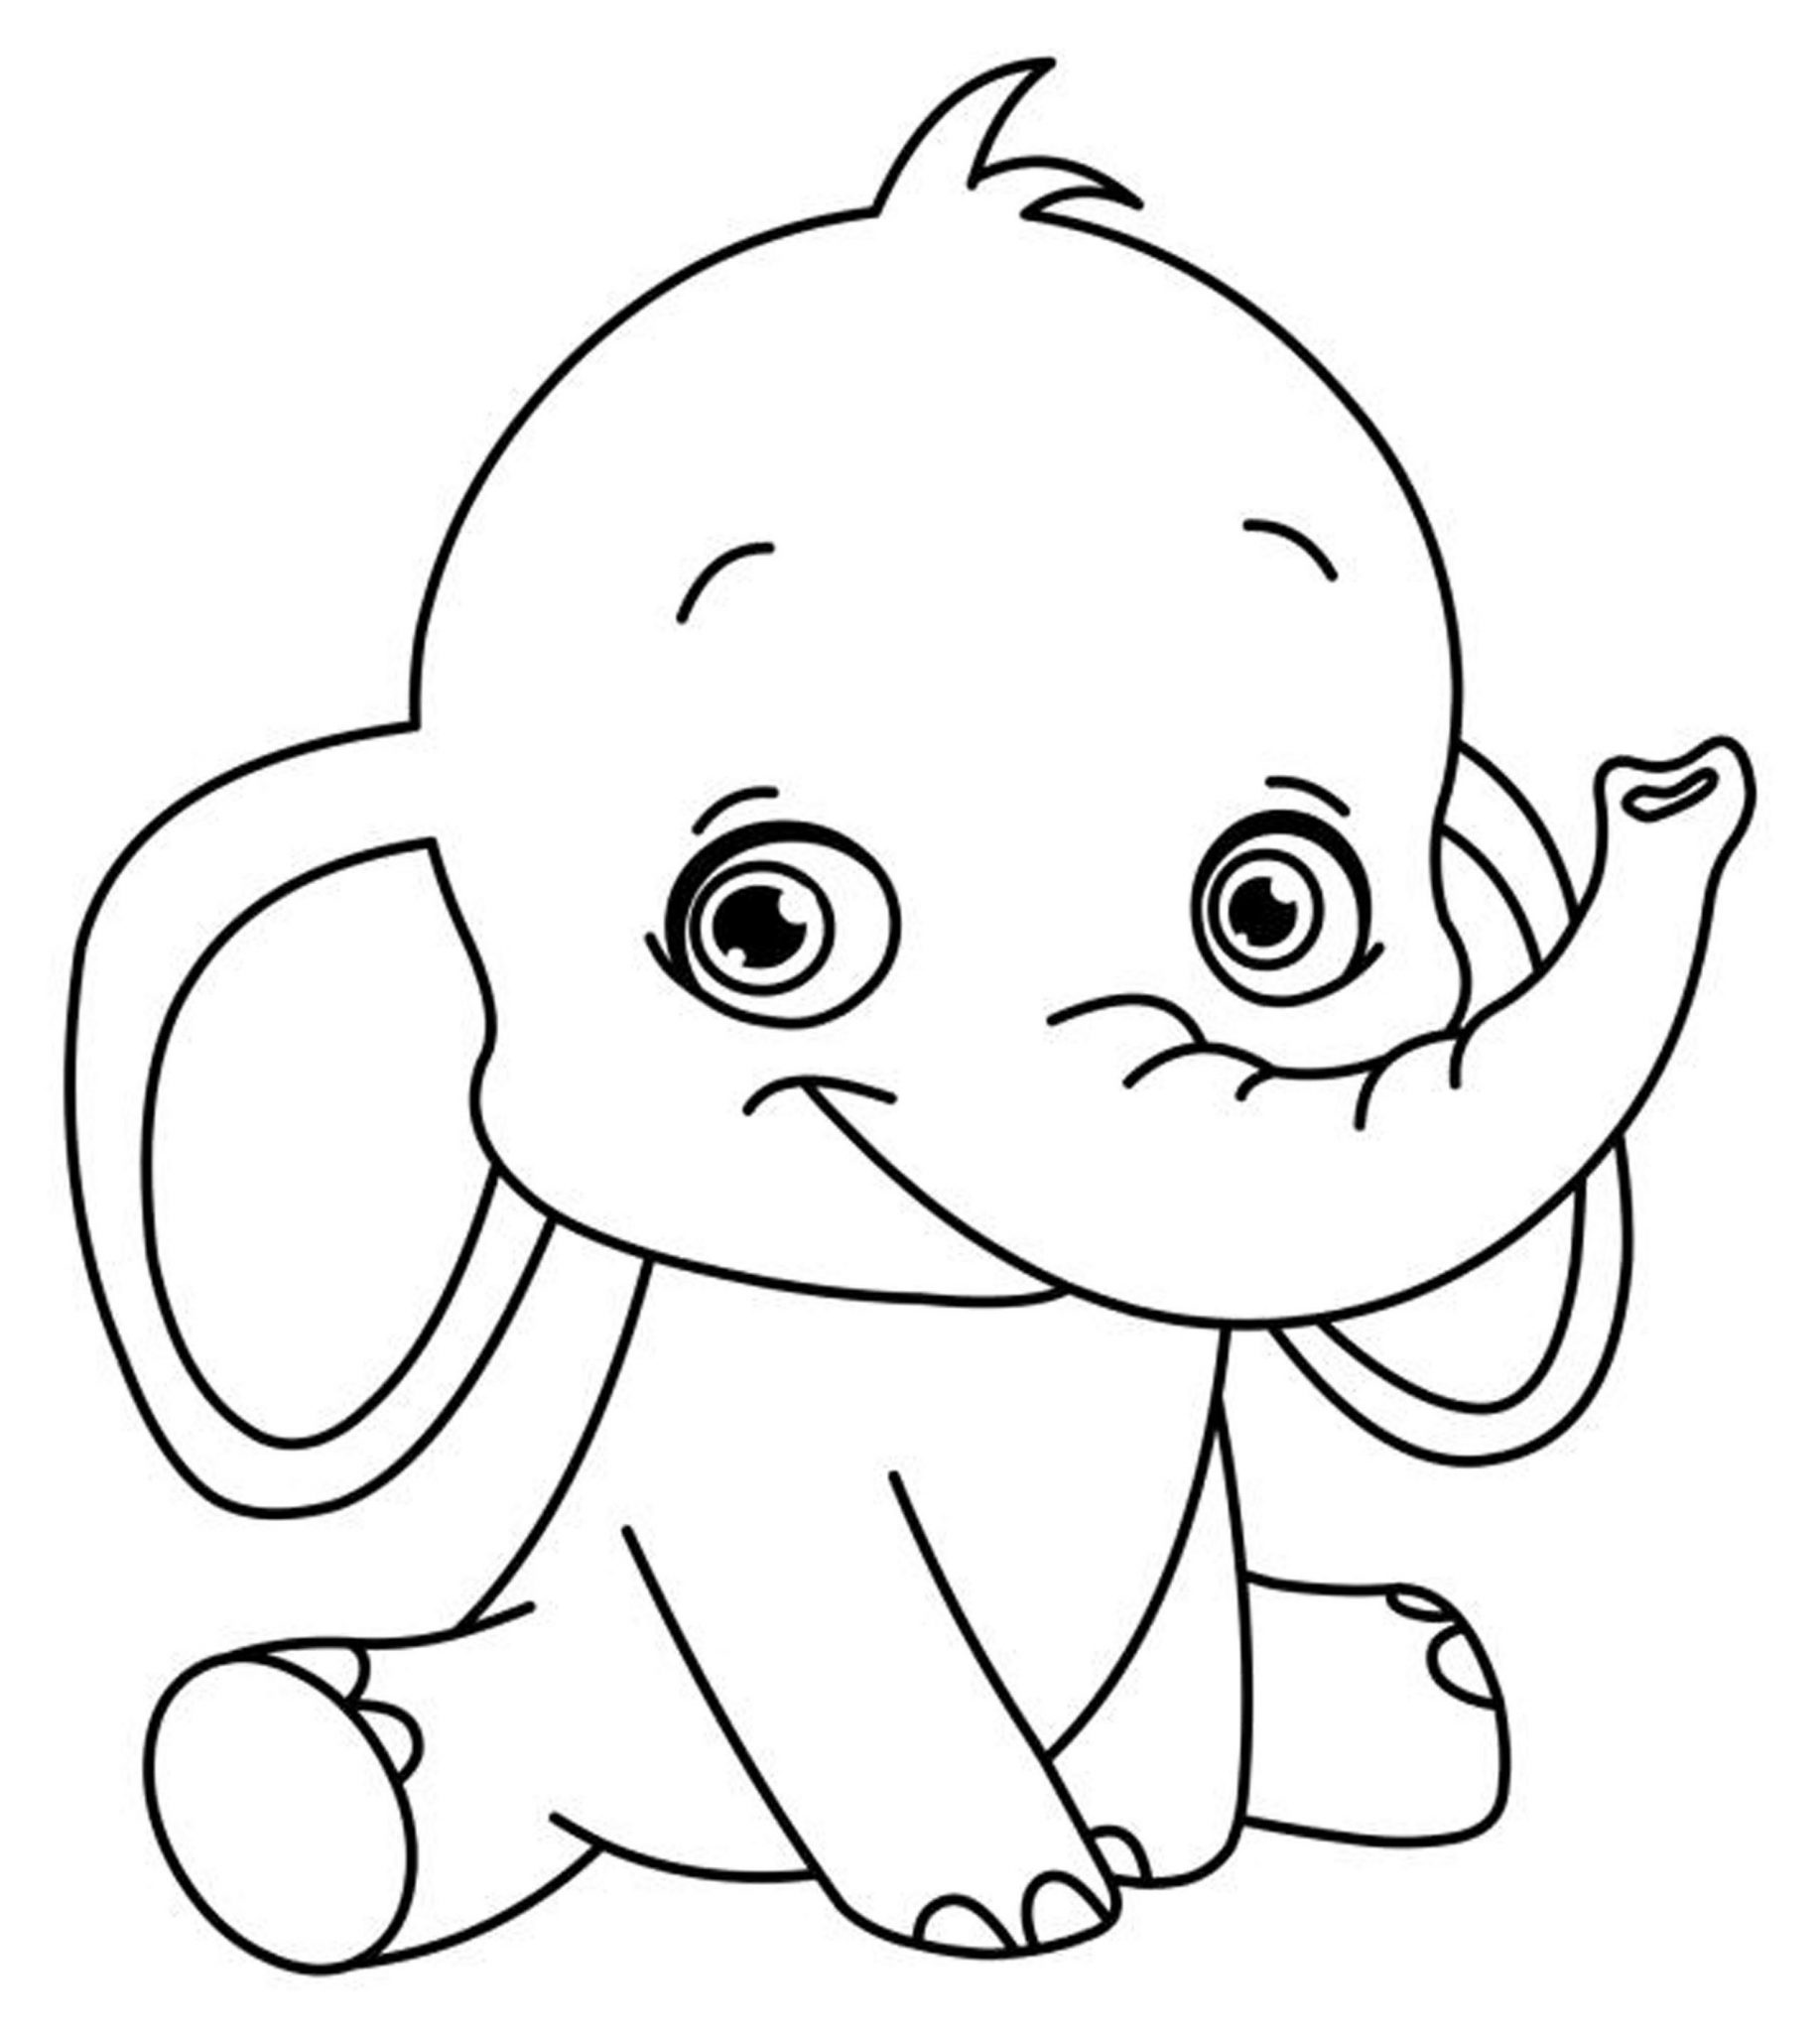 coloring disney 33 free disney coloring pages for kids baps coloring disney 1 1